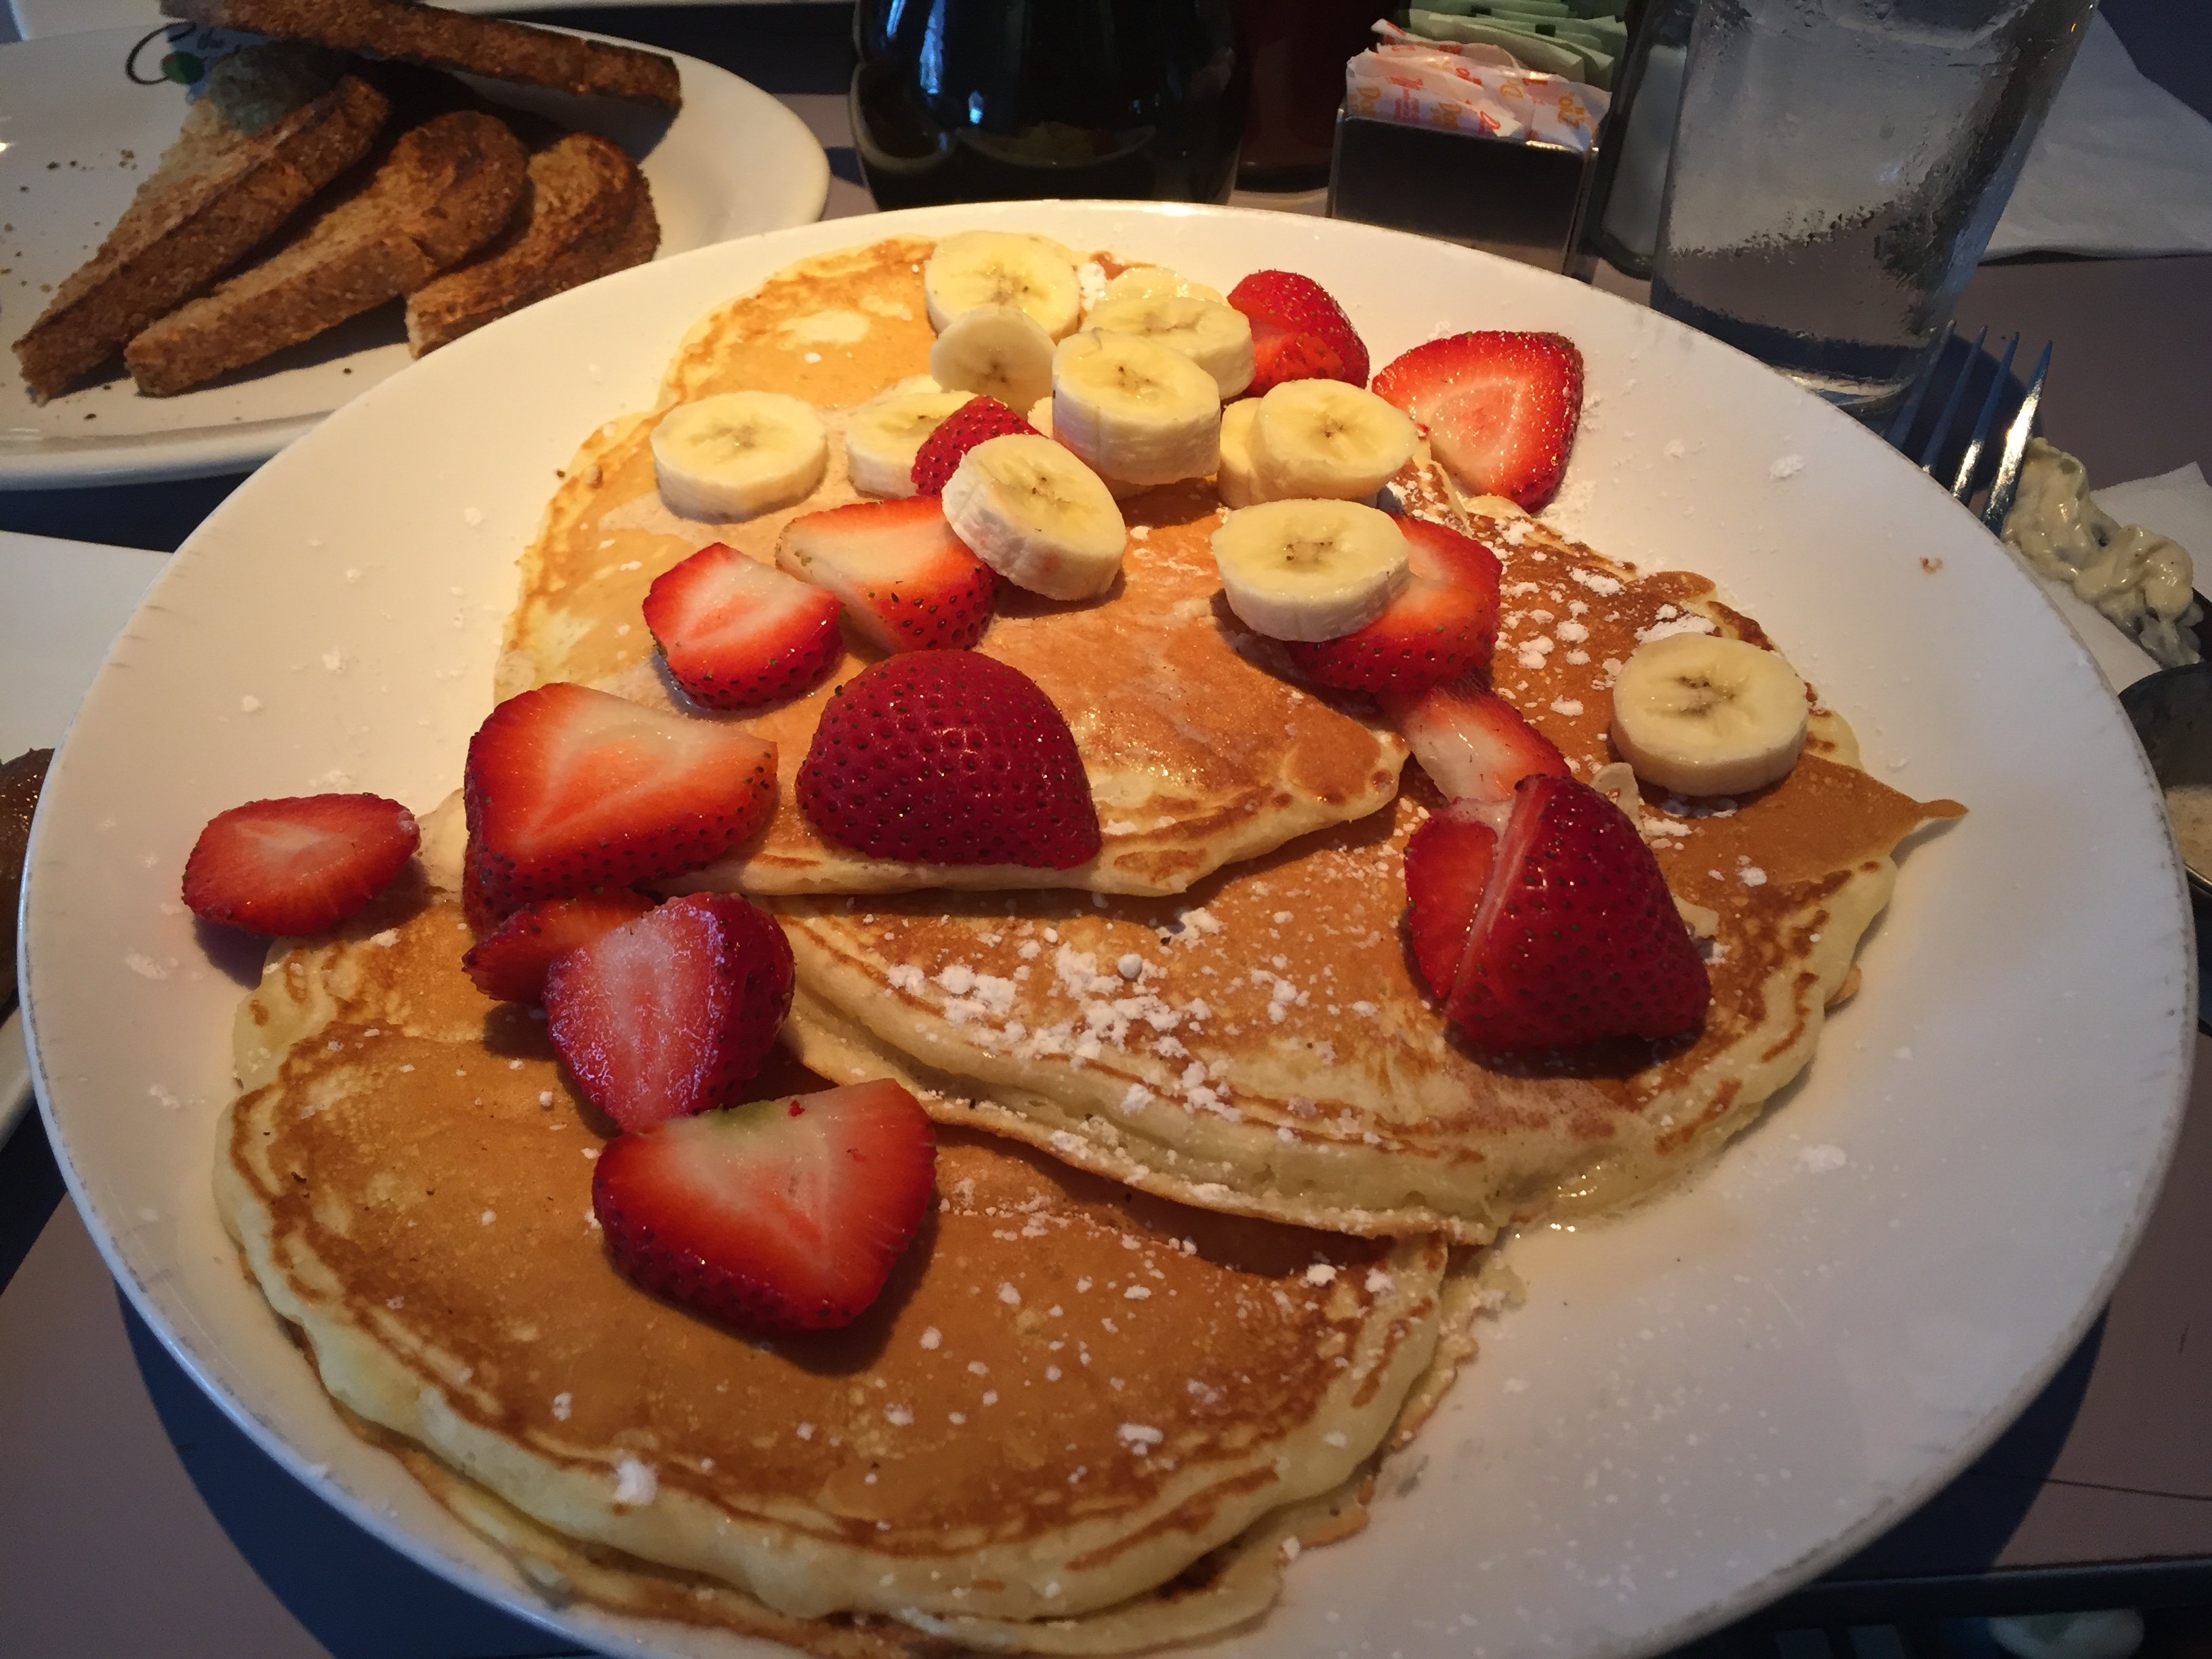 Buttermilk Pancakes with Strawberries and Bananas